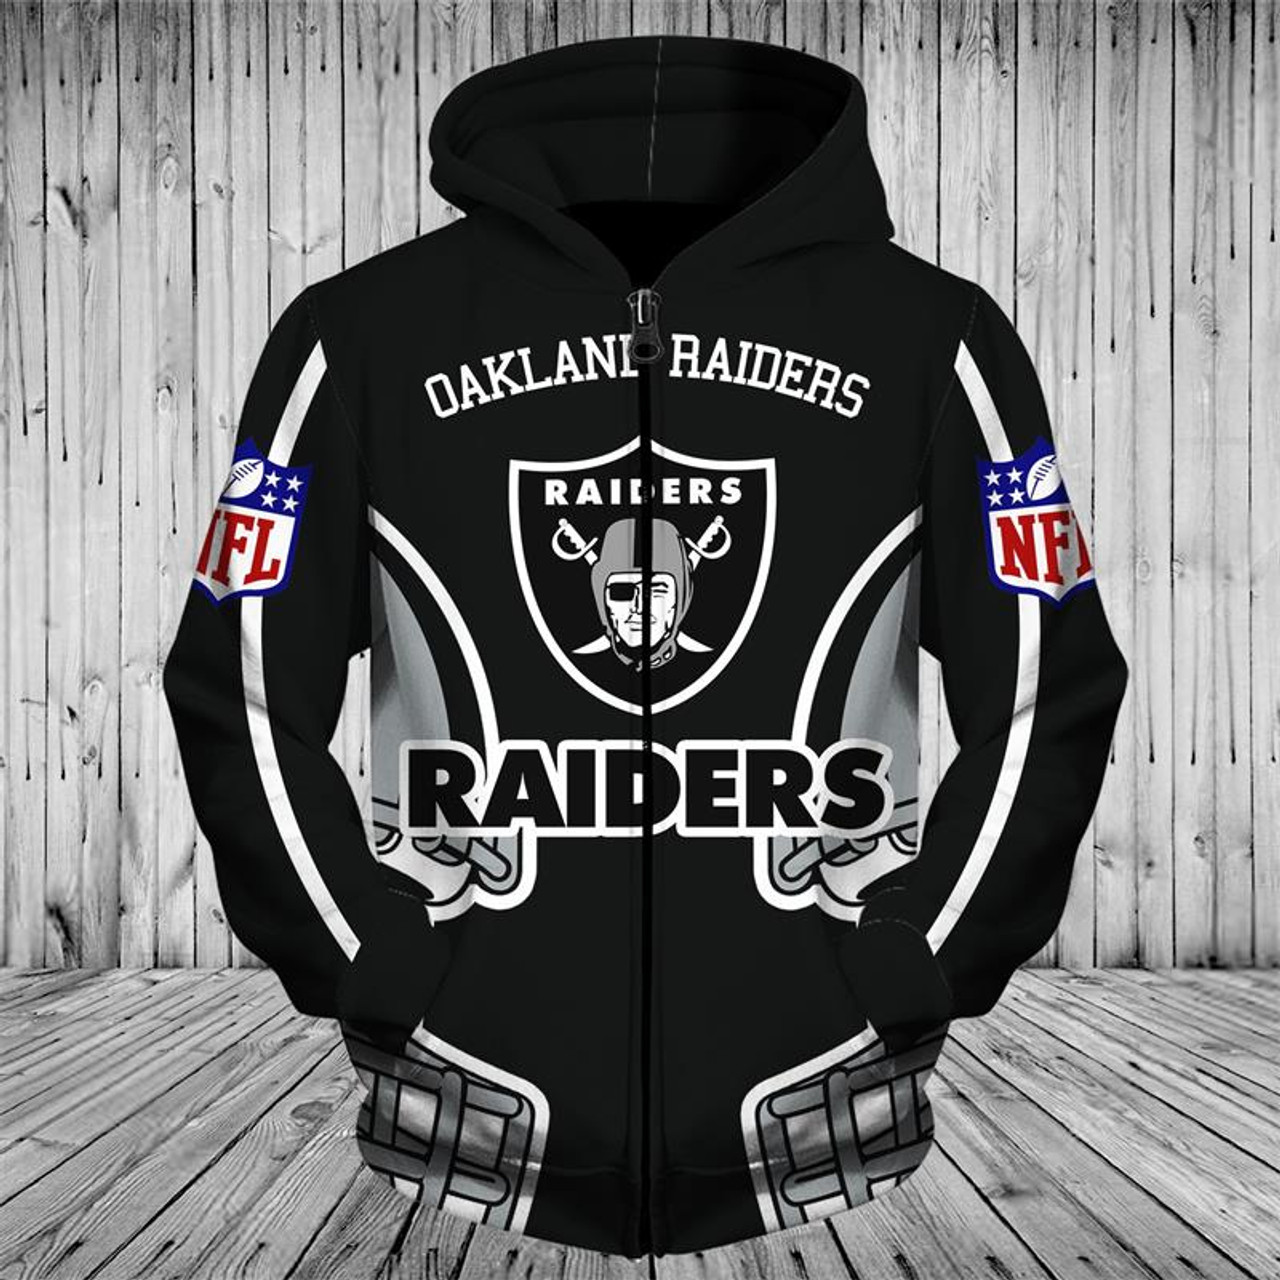 on sale 6e870 57199 **(OFFICIALLY-LICENSED-N.F.L.OAKLAND-RAIDERS-TEAM-ZIPPERED-HOODIES/NICE-CUSTOM-3D-GRAPHIC-PRINTED-DOUBLE-SIDED-ALL-OVER-OFFICIAL-RAIDERS-LOGOS  & ...